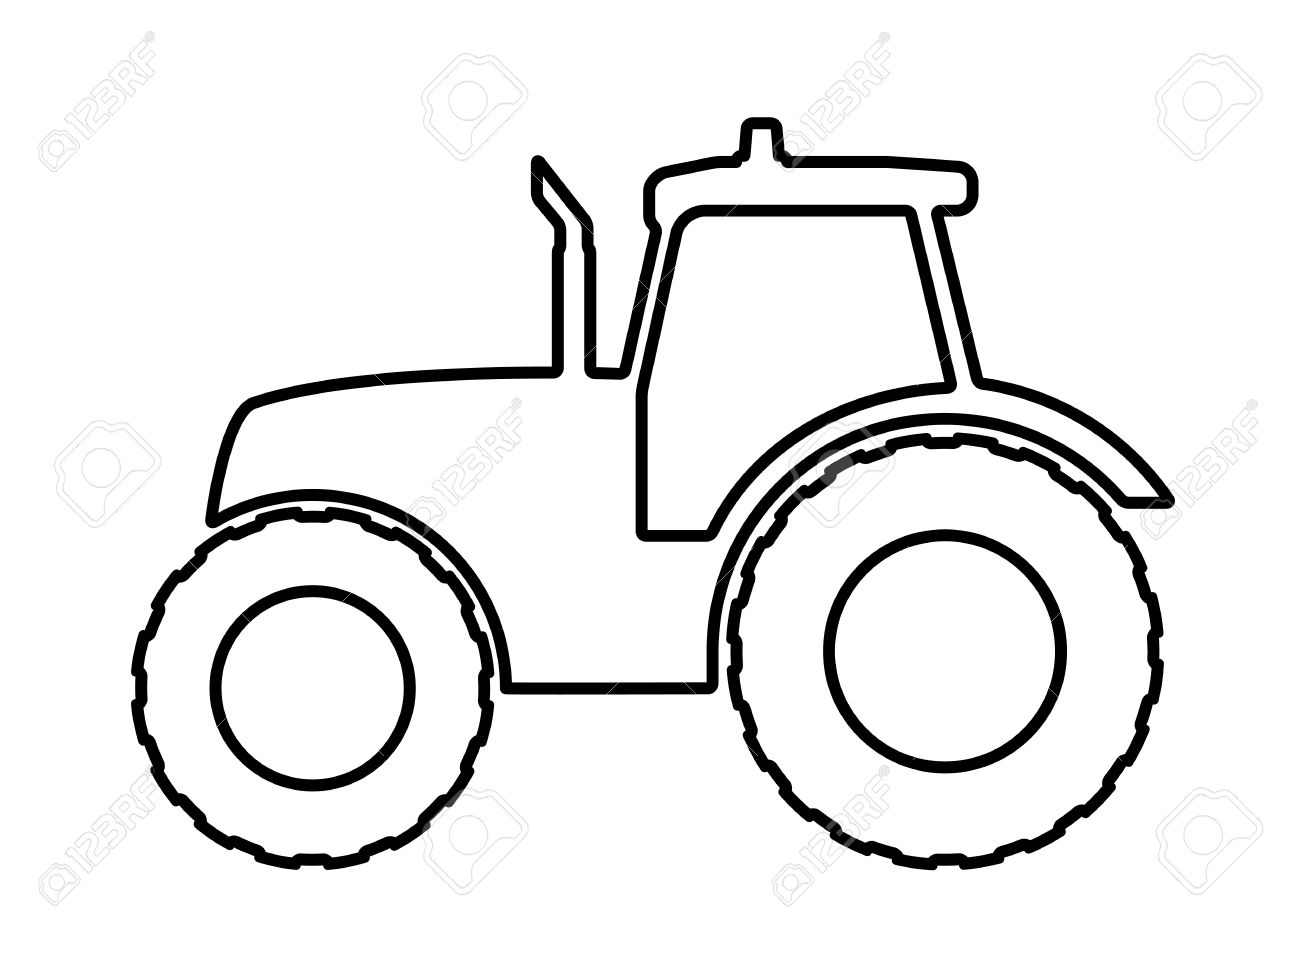 1300x975 Vector Illustration Of A Silhouette Of A Tractor On A White